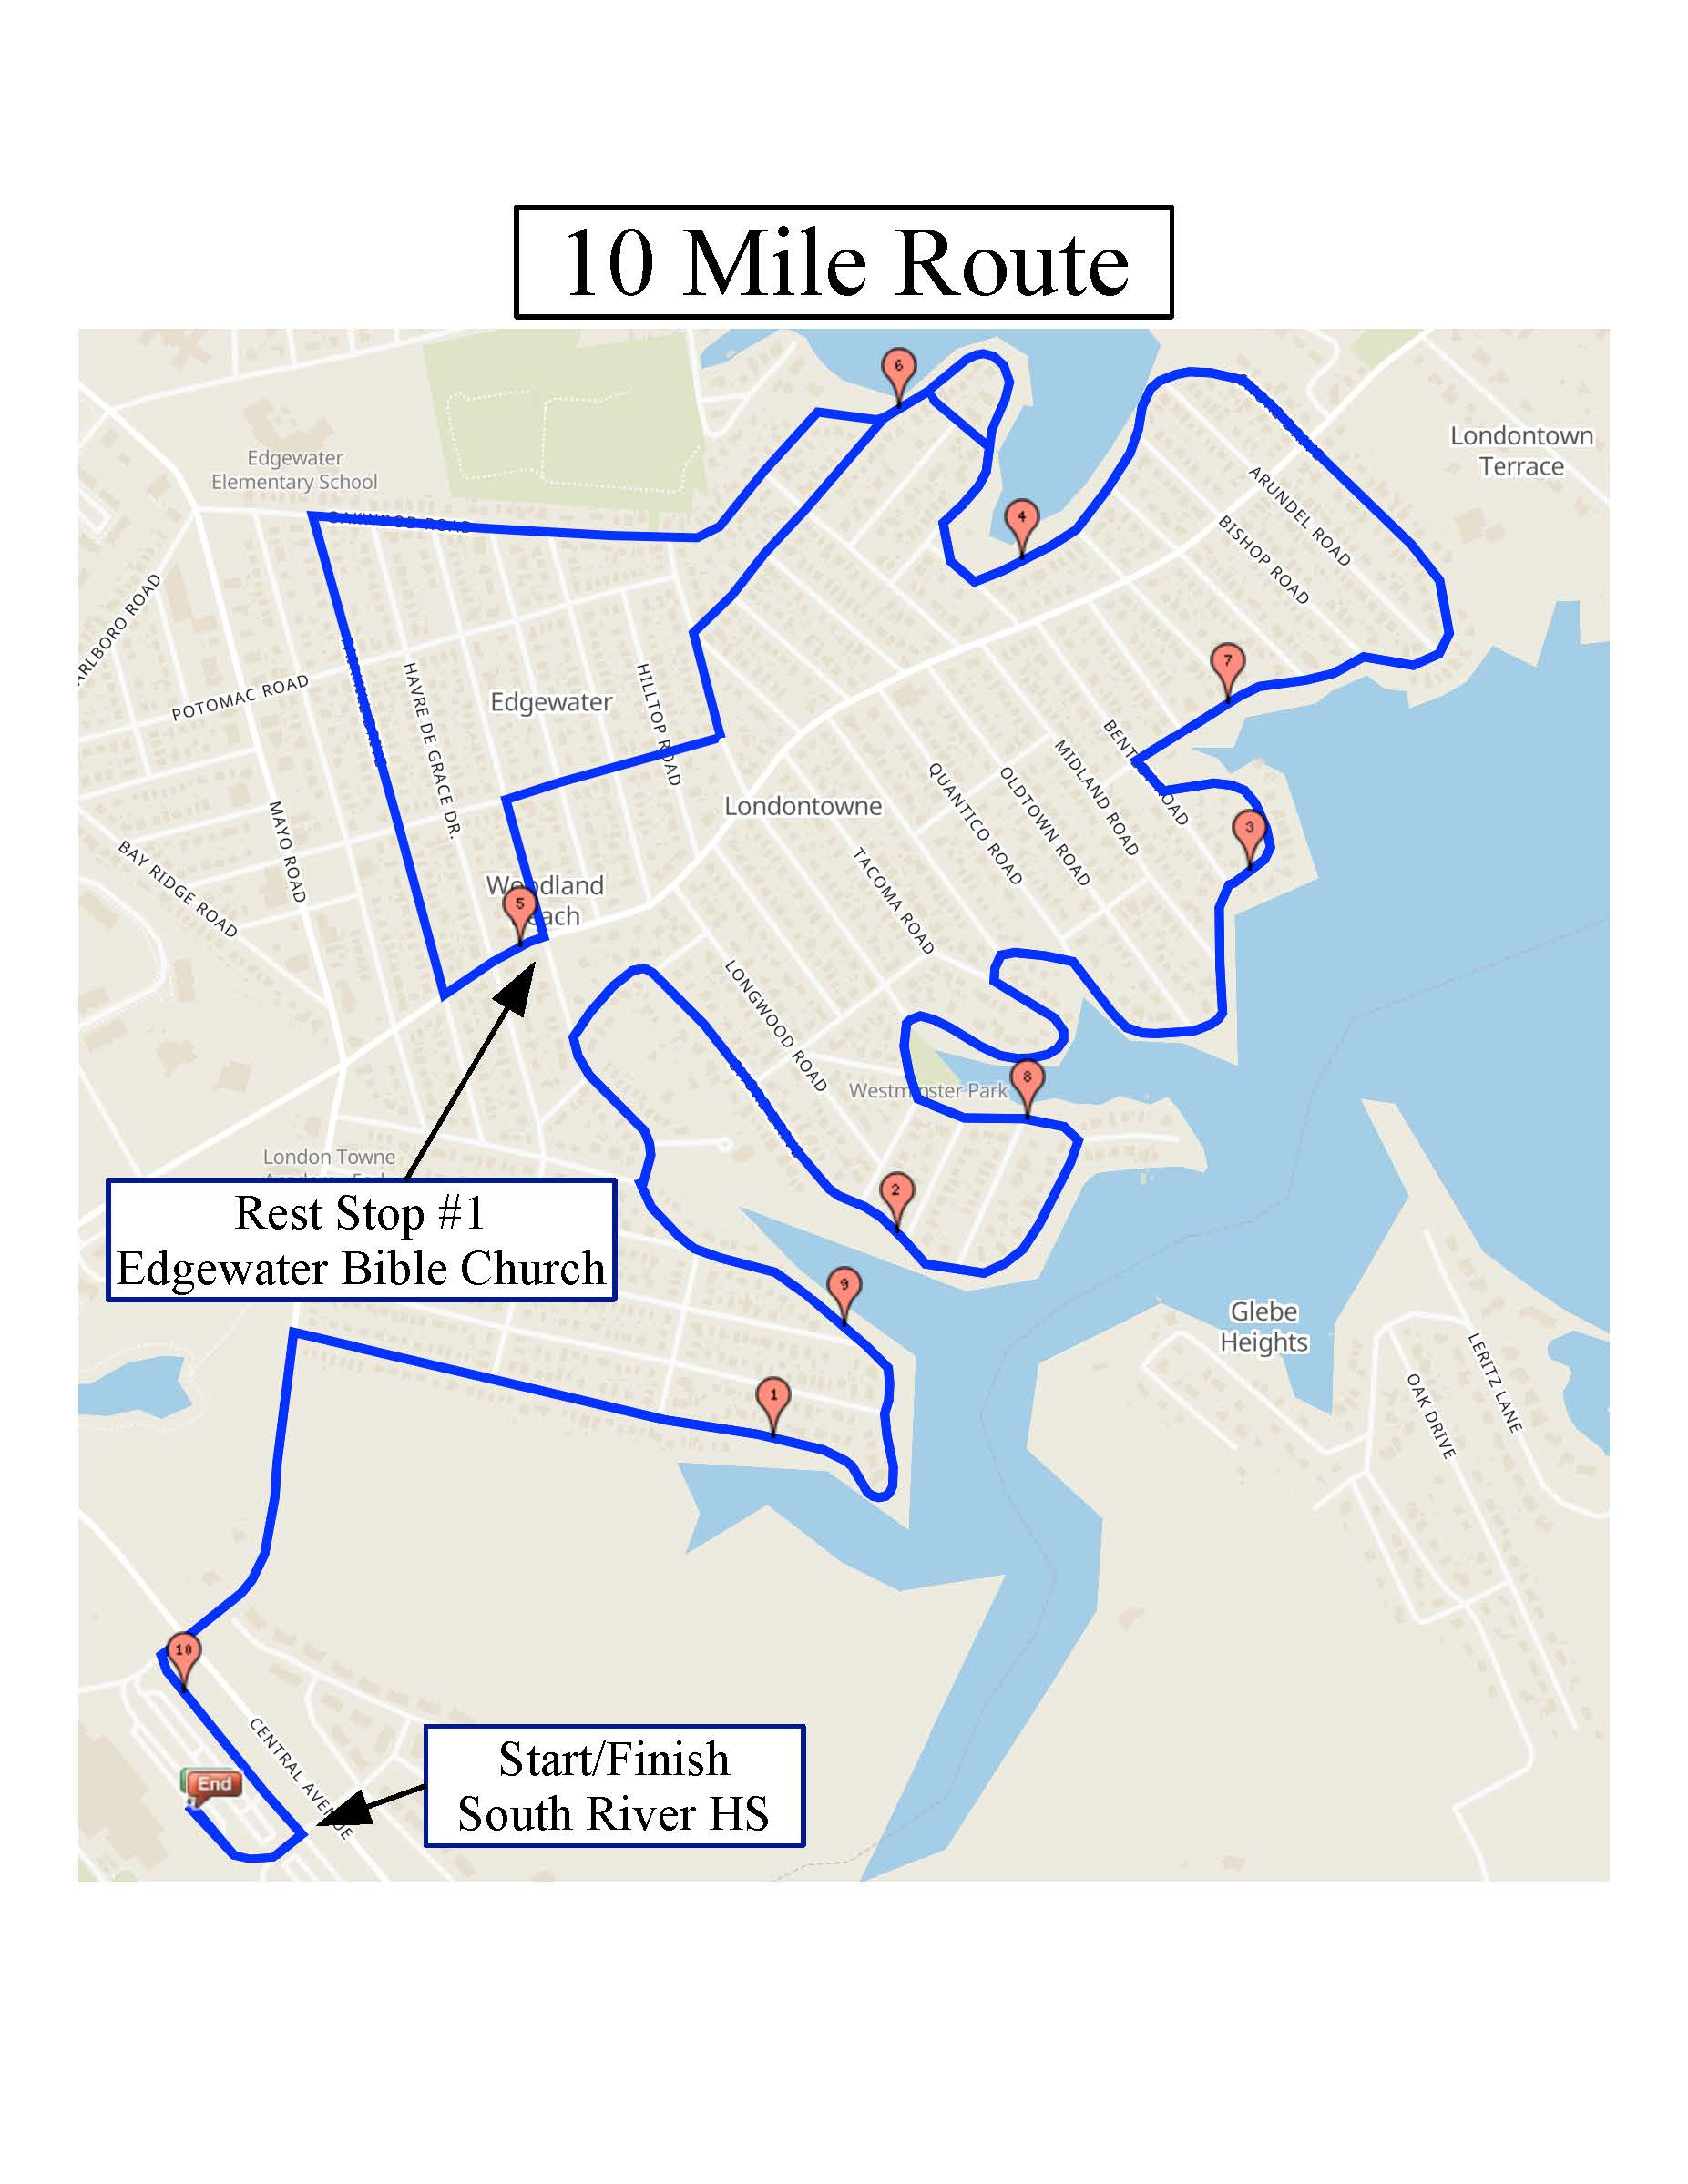 10 mile route Promise Ride